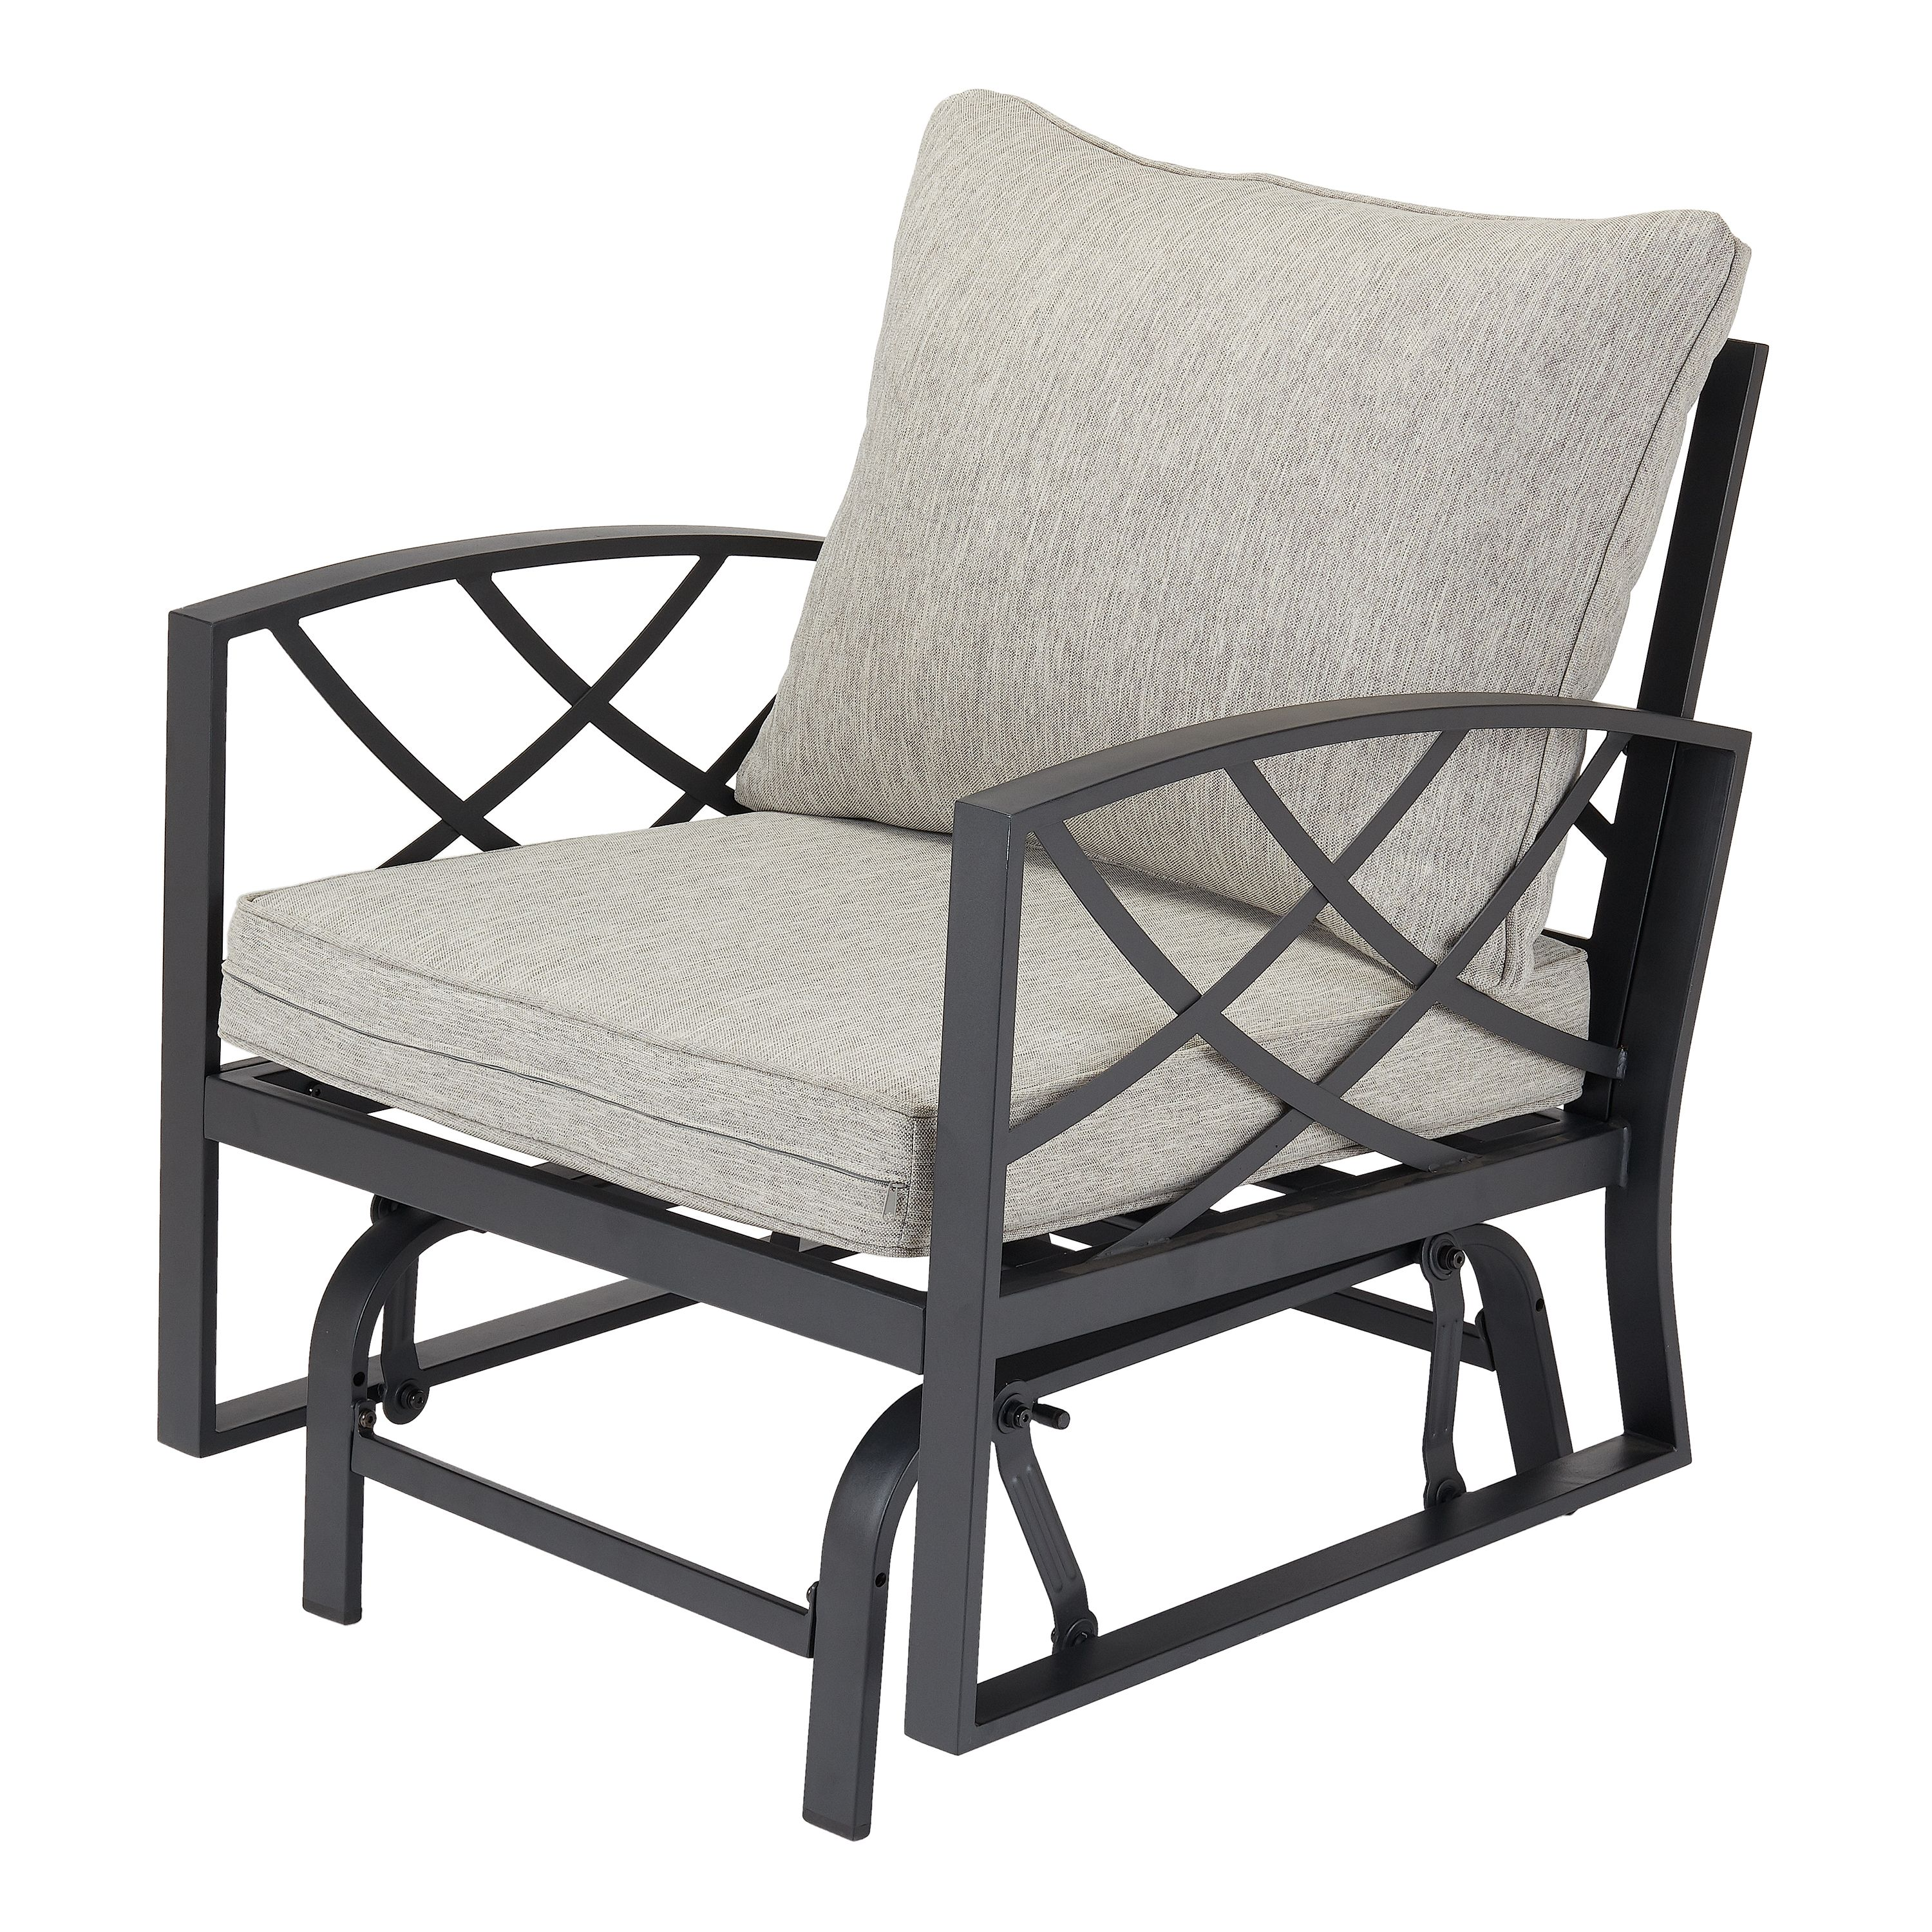 Better Homes & Gardens Bay Ridge Glider Chair with Gray Cushions